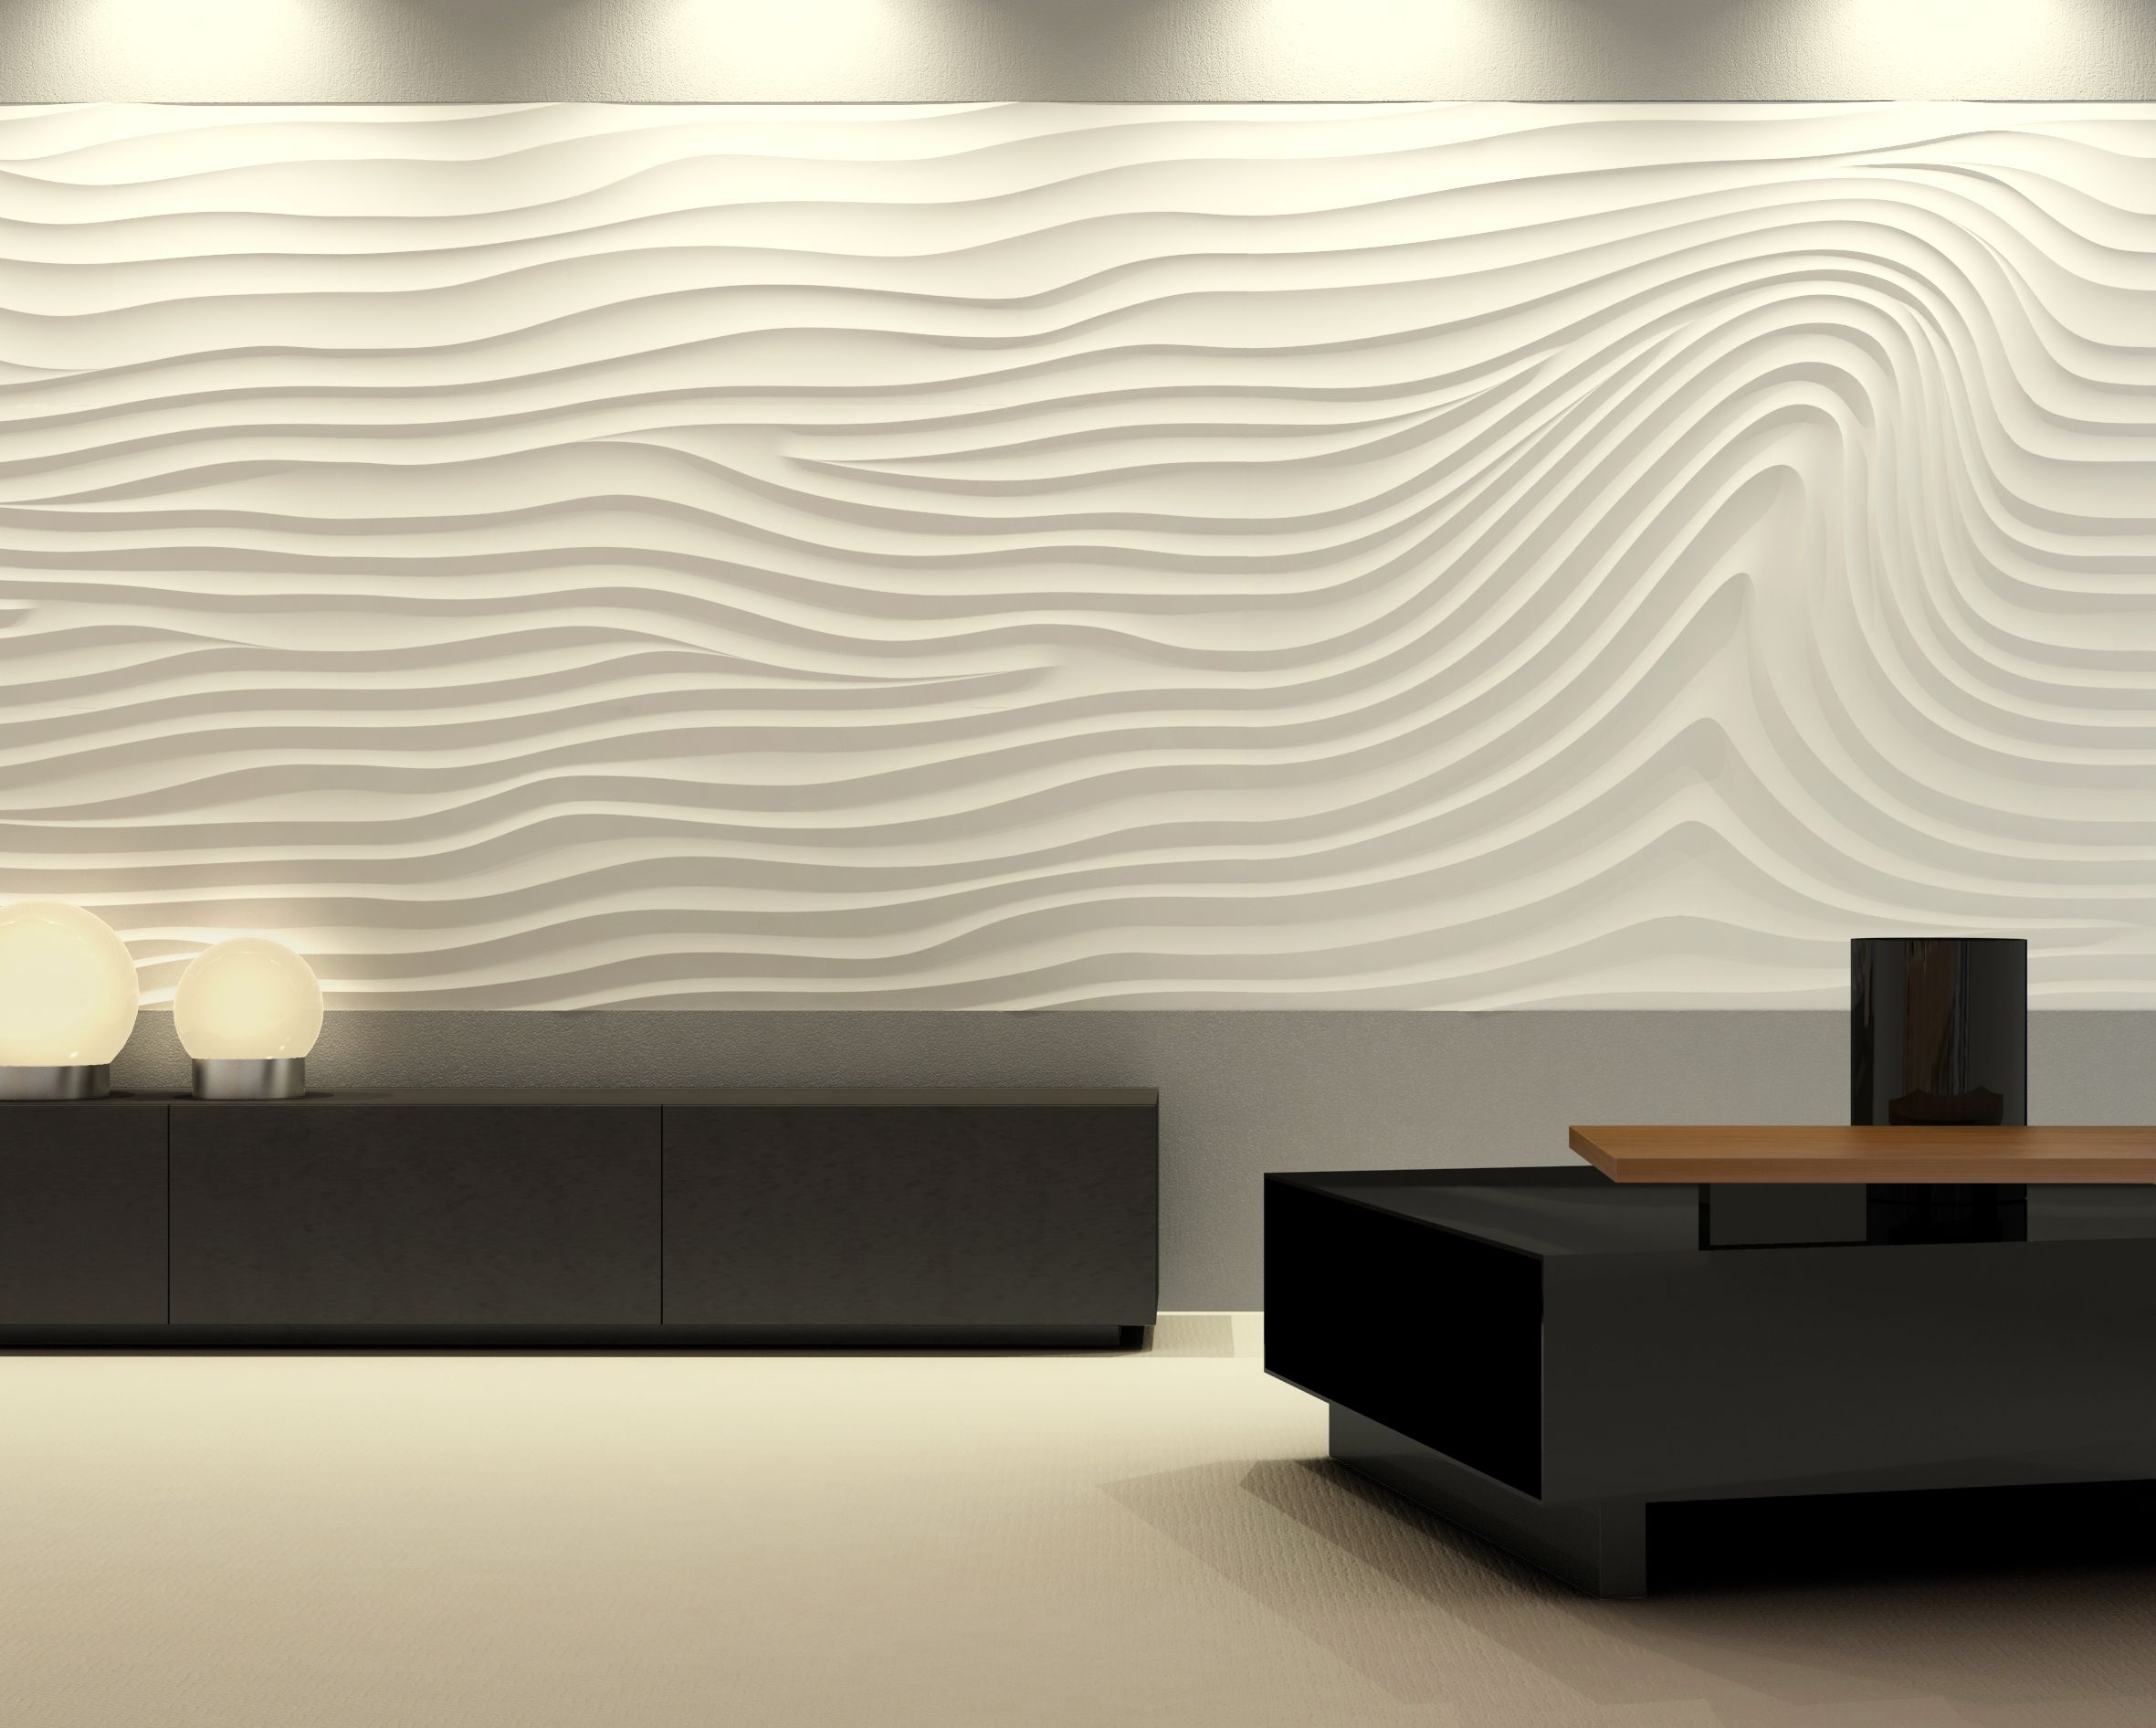 Flow U0026 Wave  Concept Candie Interiors Now Offers E Design Services And  Custom Mood Boards For Only $200 Per Room!